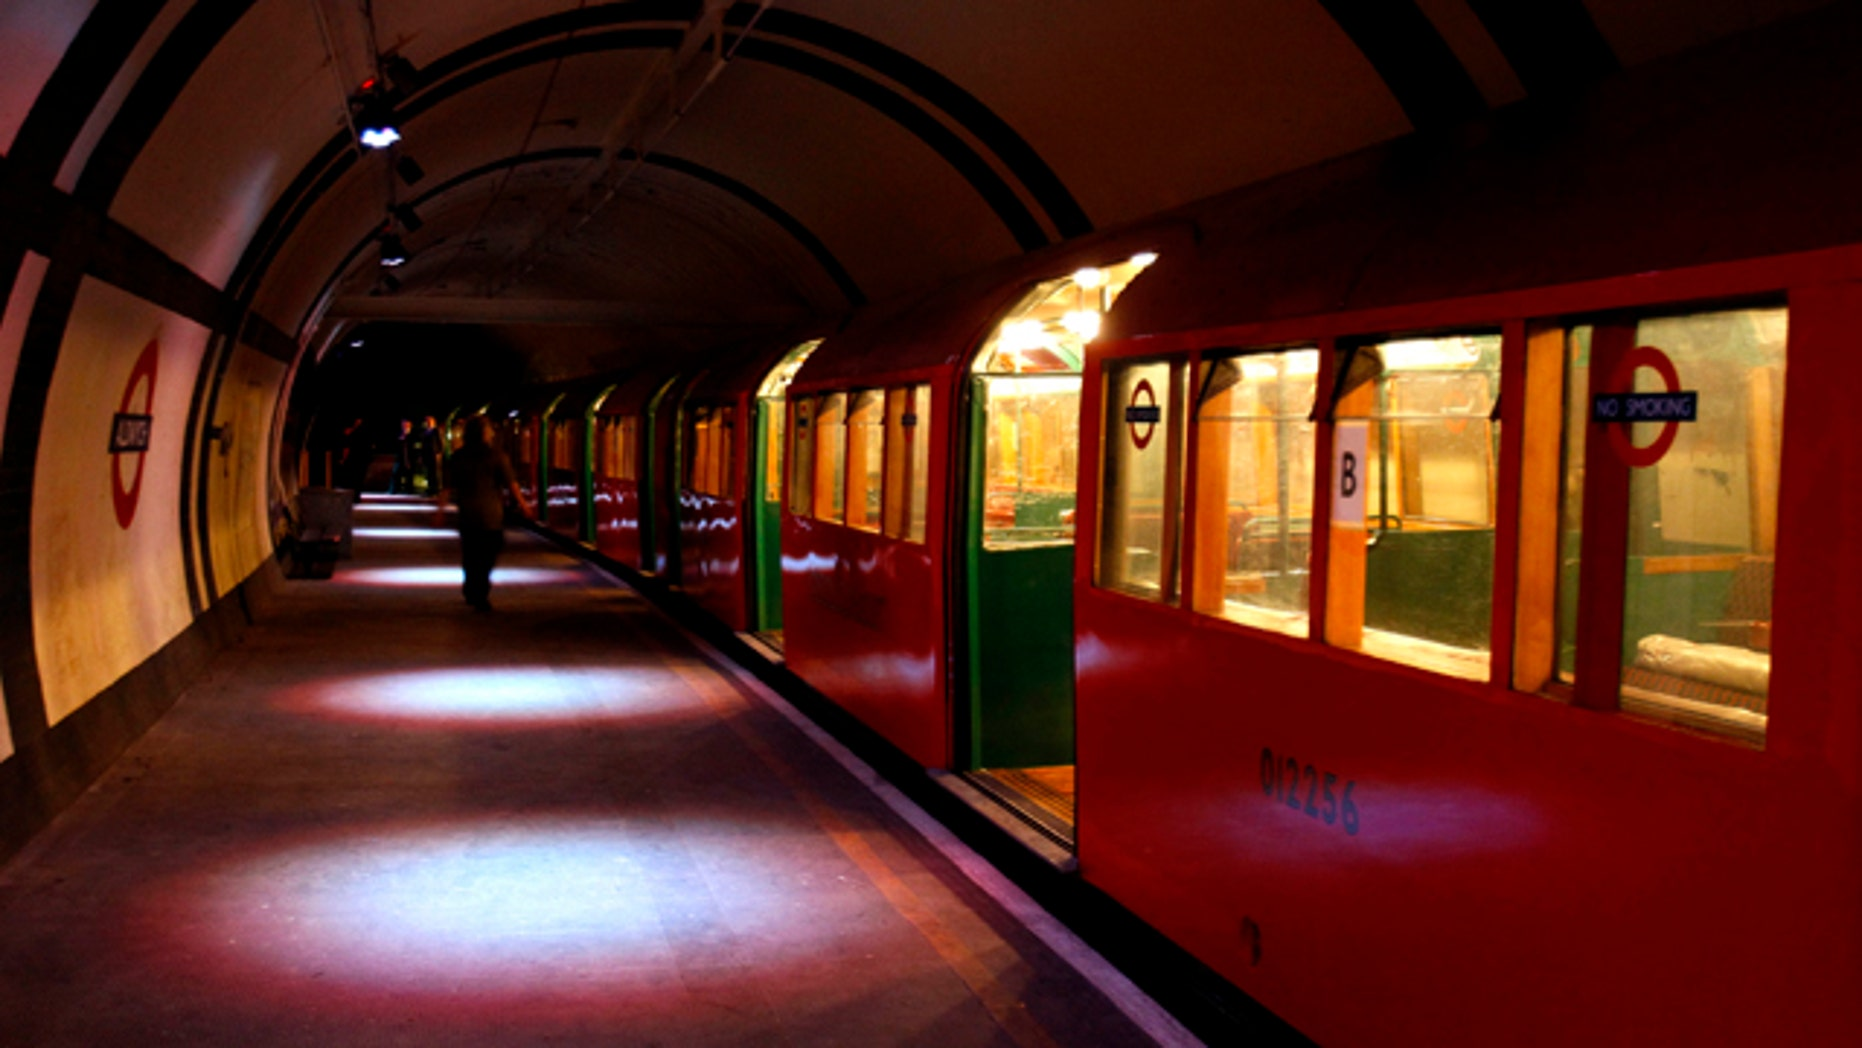 September 23: A 1938 tube train is seen at the platform in Aldwych Underground station in London.  As part of a series of commemorative events taking place in London to mark the 70th anniversary of the Blitz and the Battle of Britain, visitors are being allowed to descend into the disused Aldwych Underground station, public tickets have sold out already. (AP)